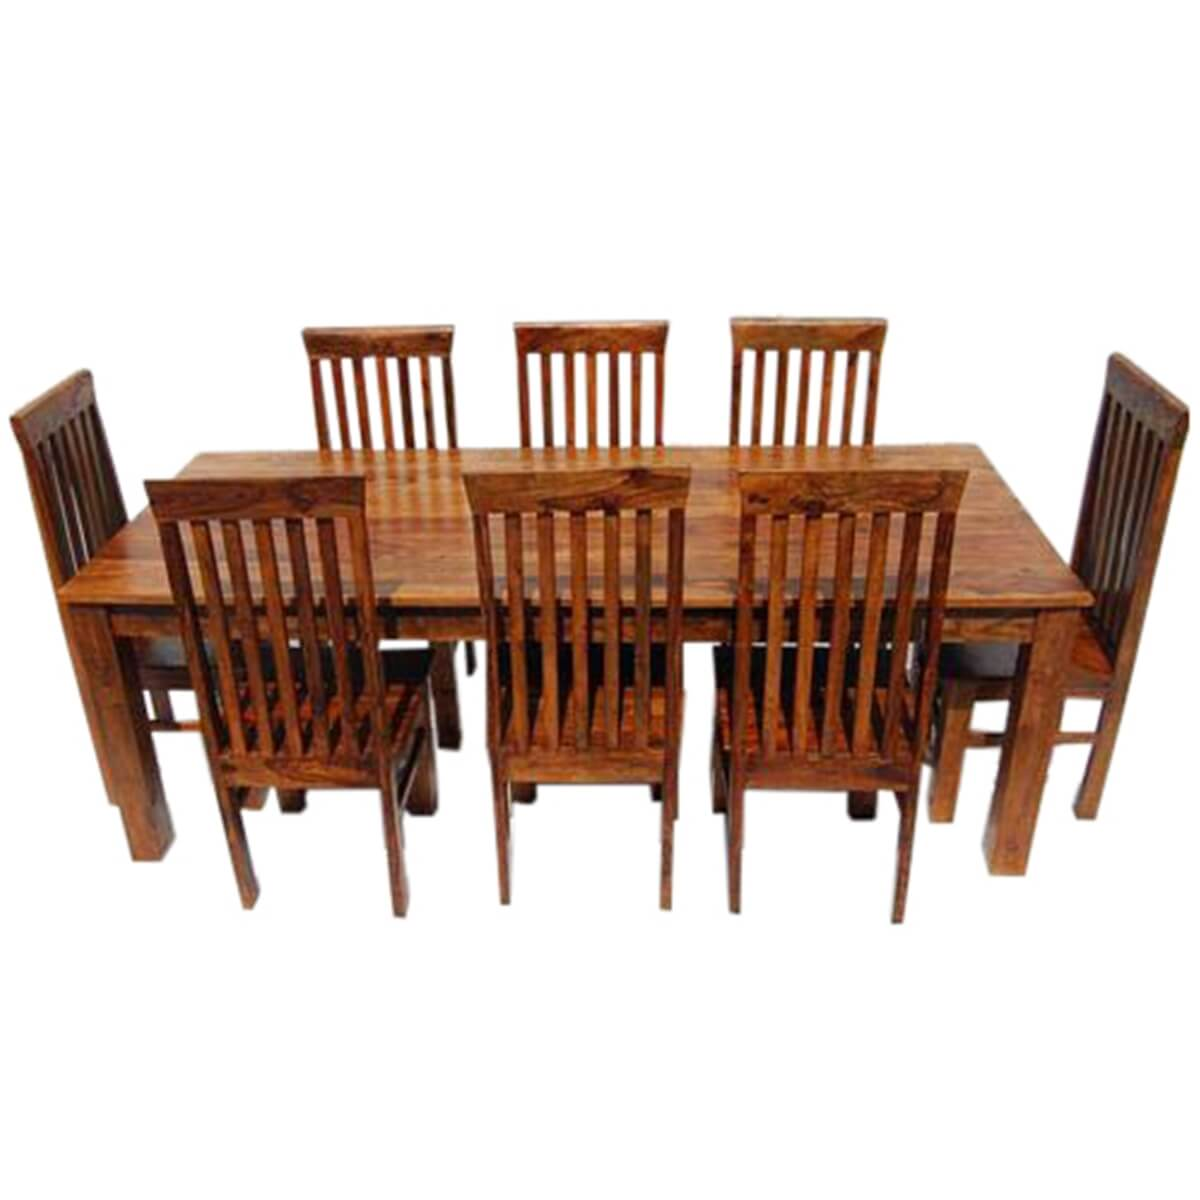 rustic dining table and chairs the liberator chair classic lincoln study set